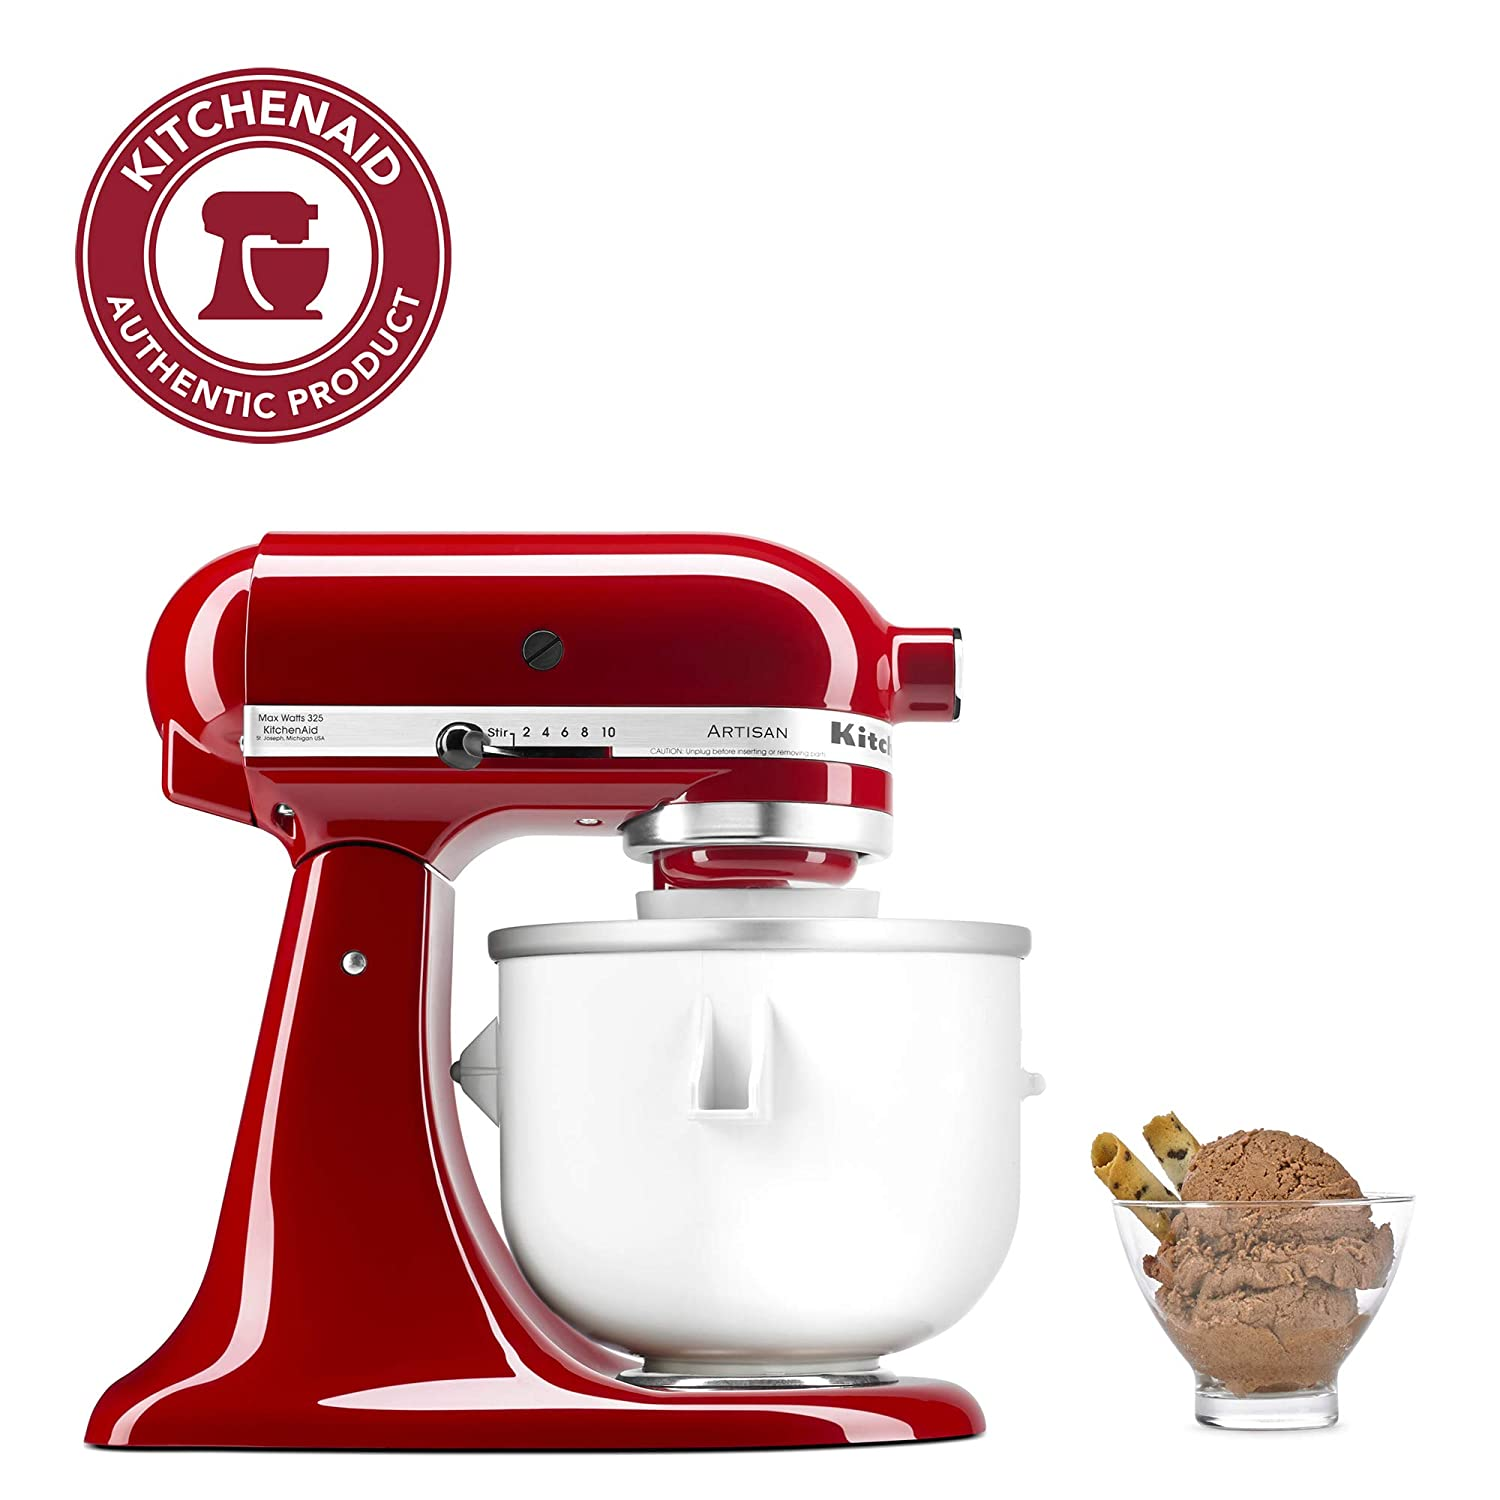 Top 8 Best Ice Cream Maker for Kids Reviews in 2020 8